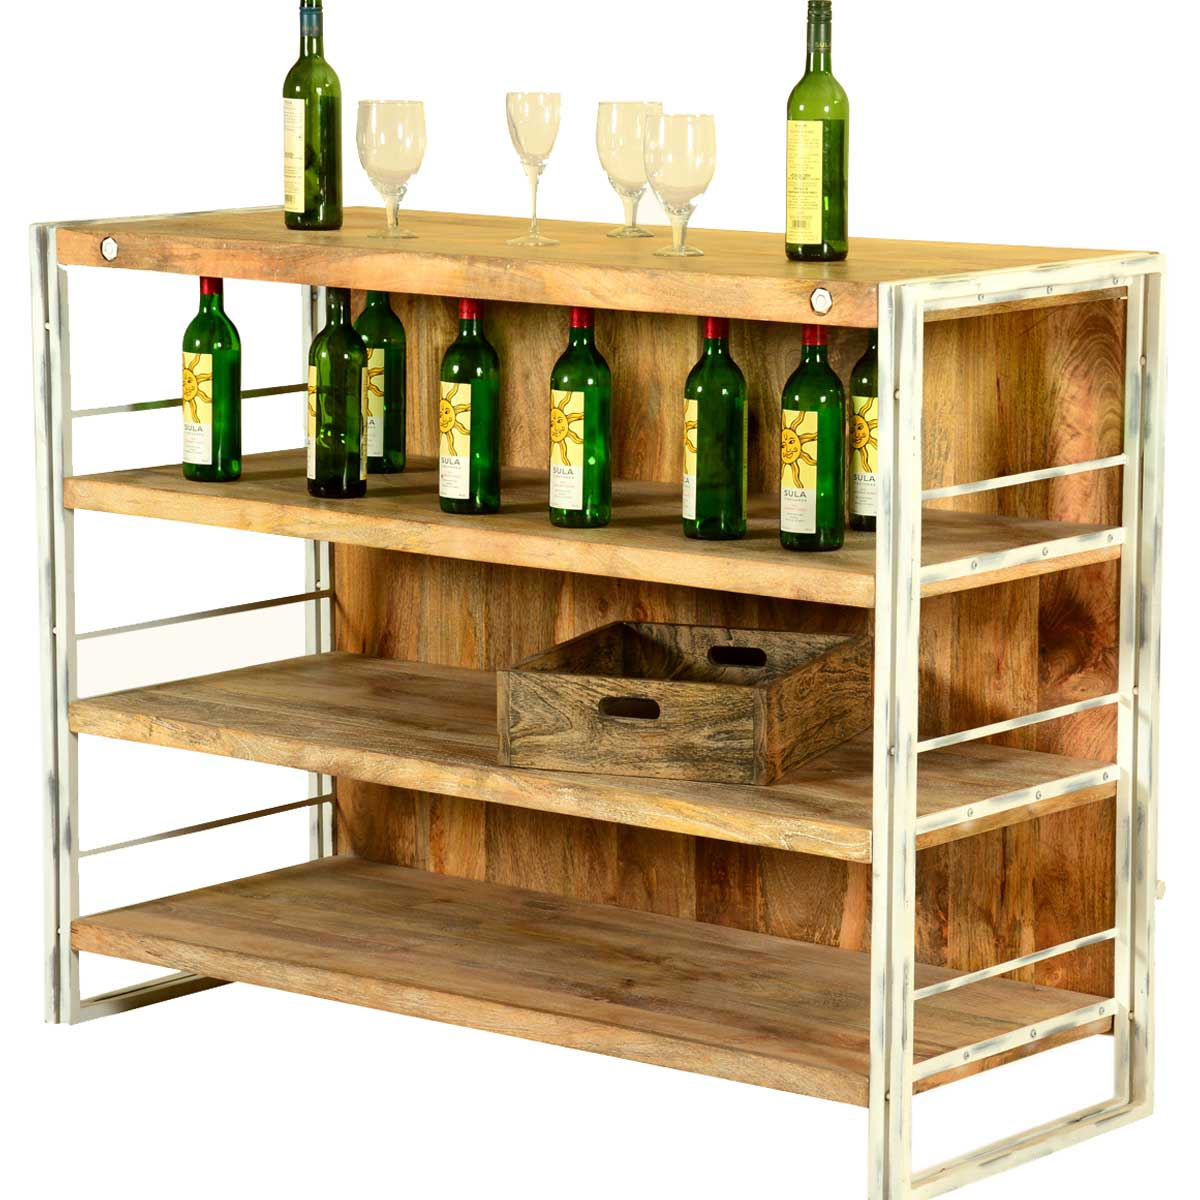 Modern Home Bar Cabinet: Modern Rustic Mango Wood Industrial Home Wine Bar Cabinet